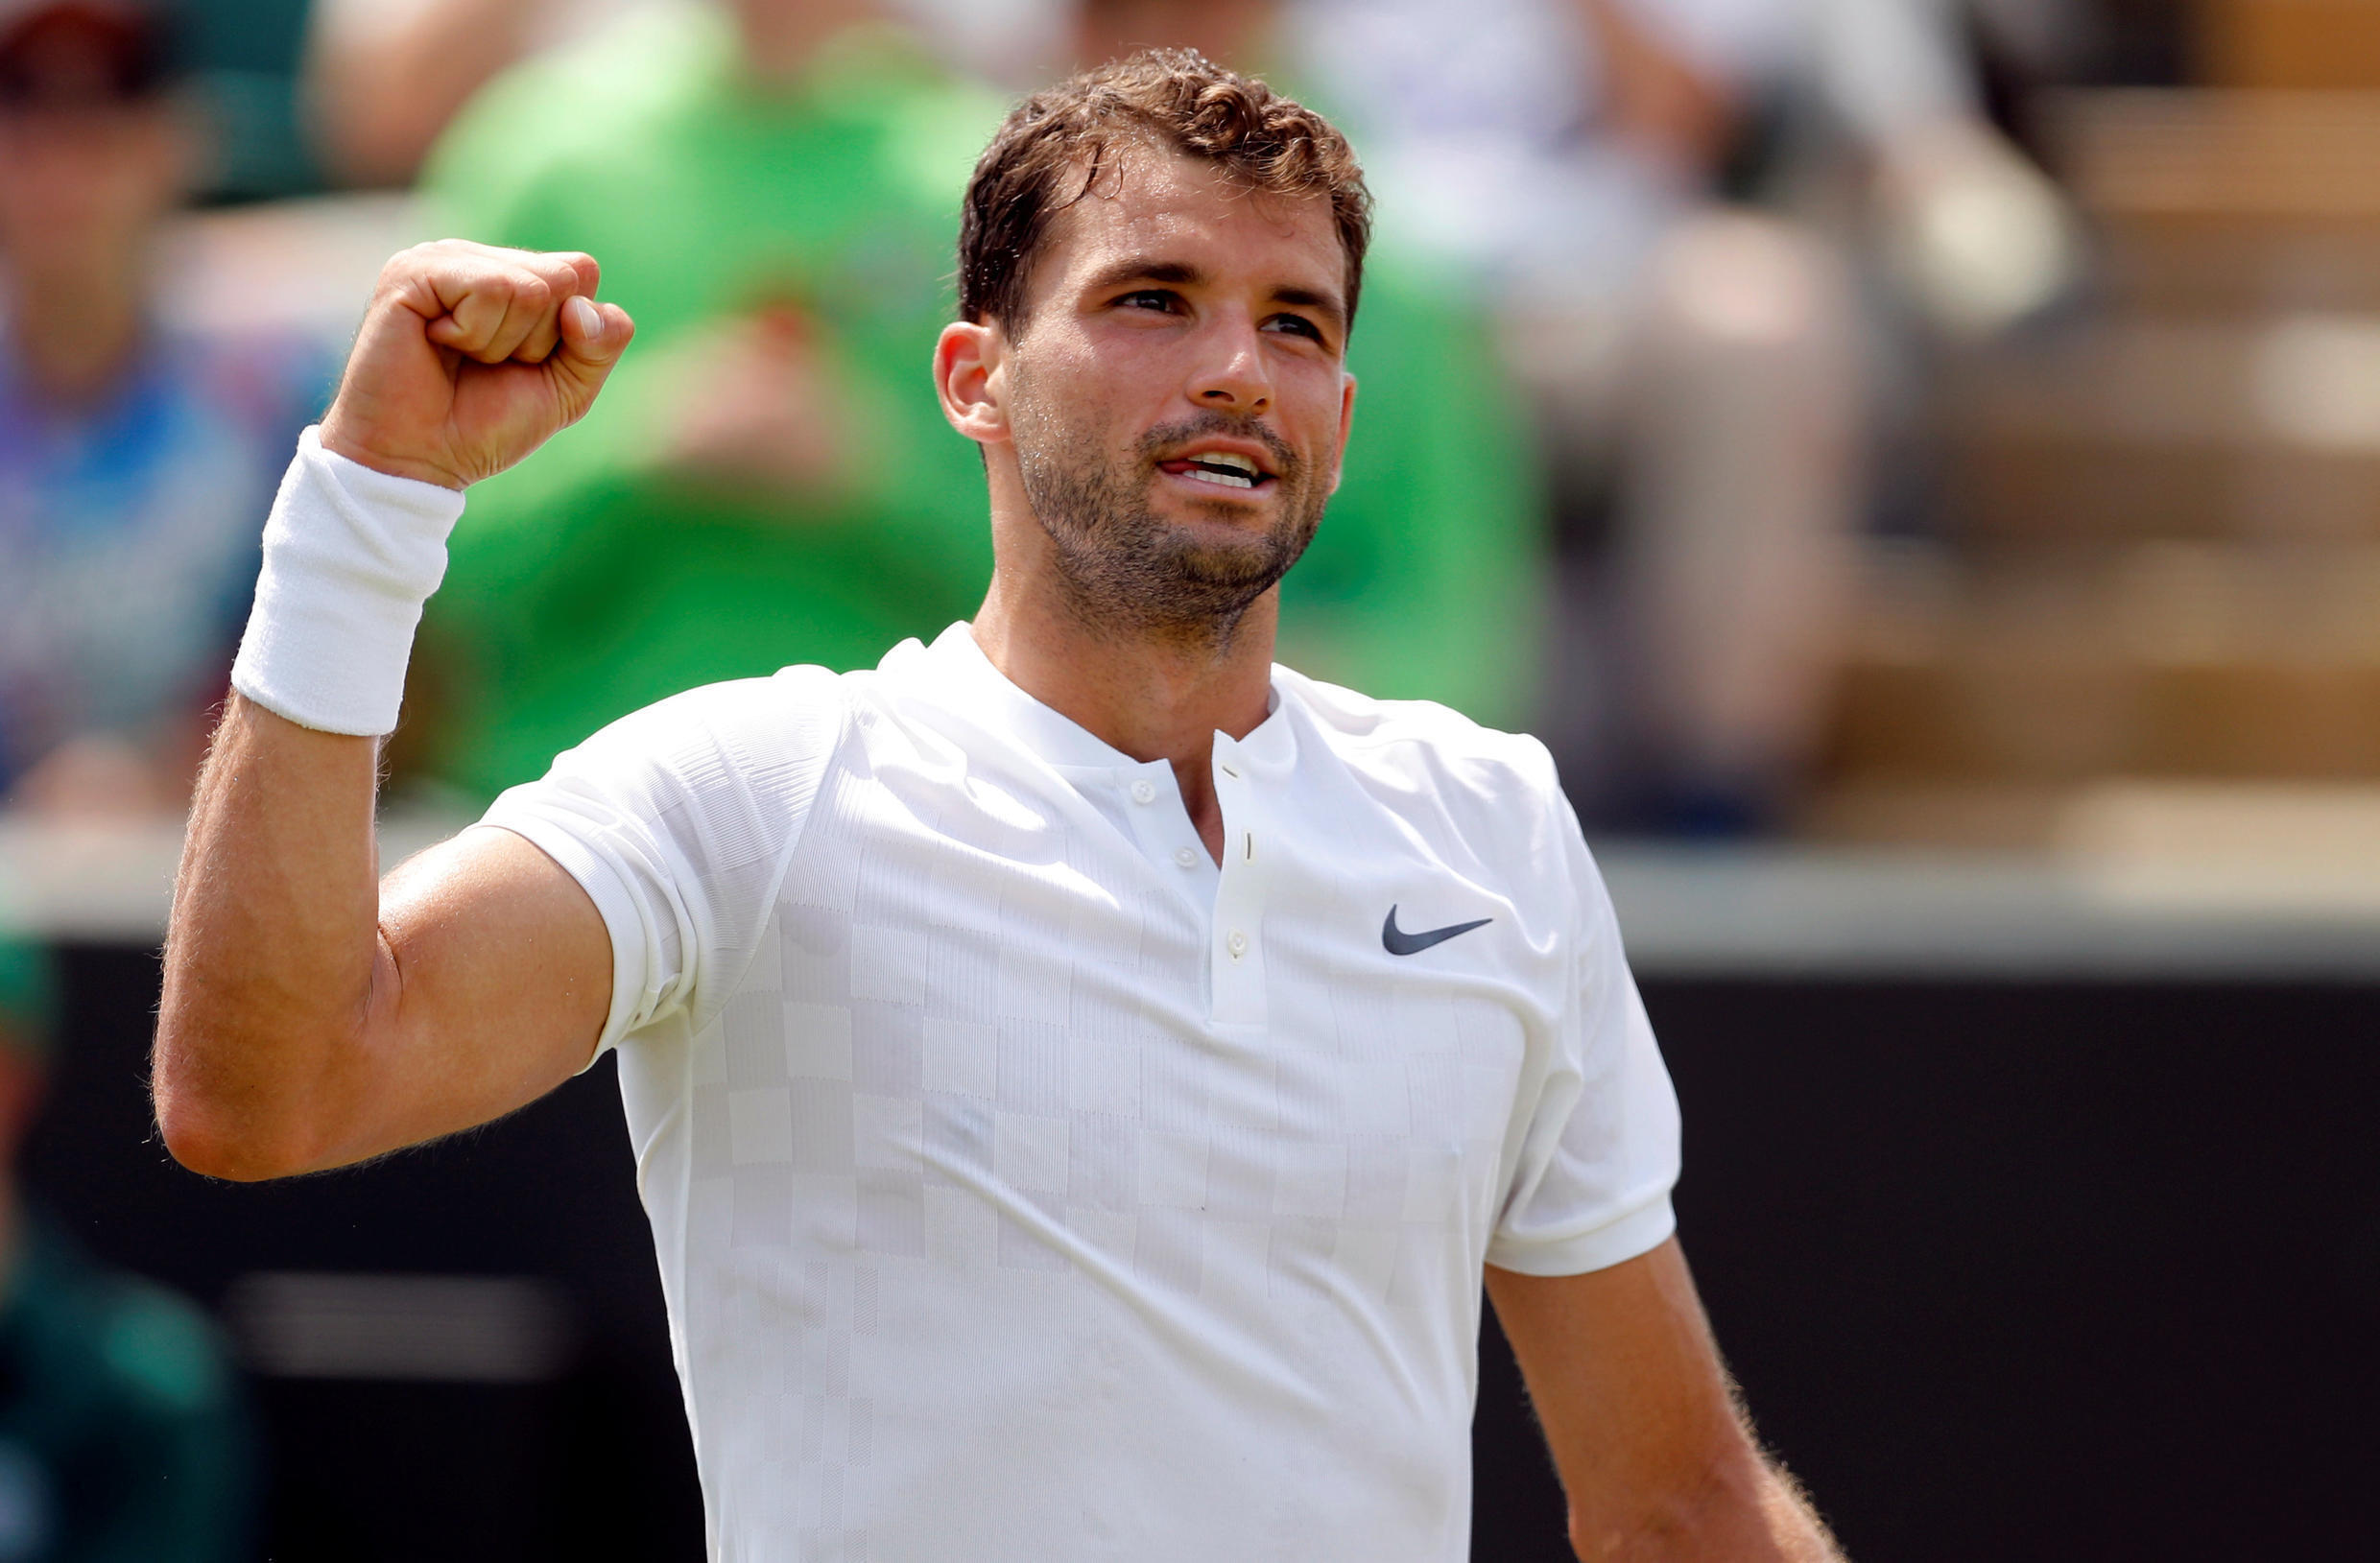 Grigor Dimitrov has never been past the third round at Roland Garros.